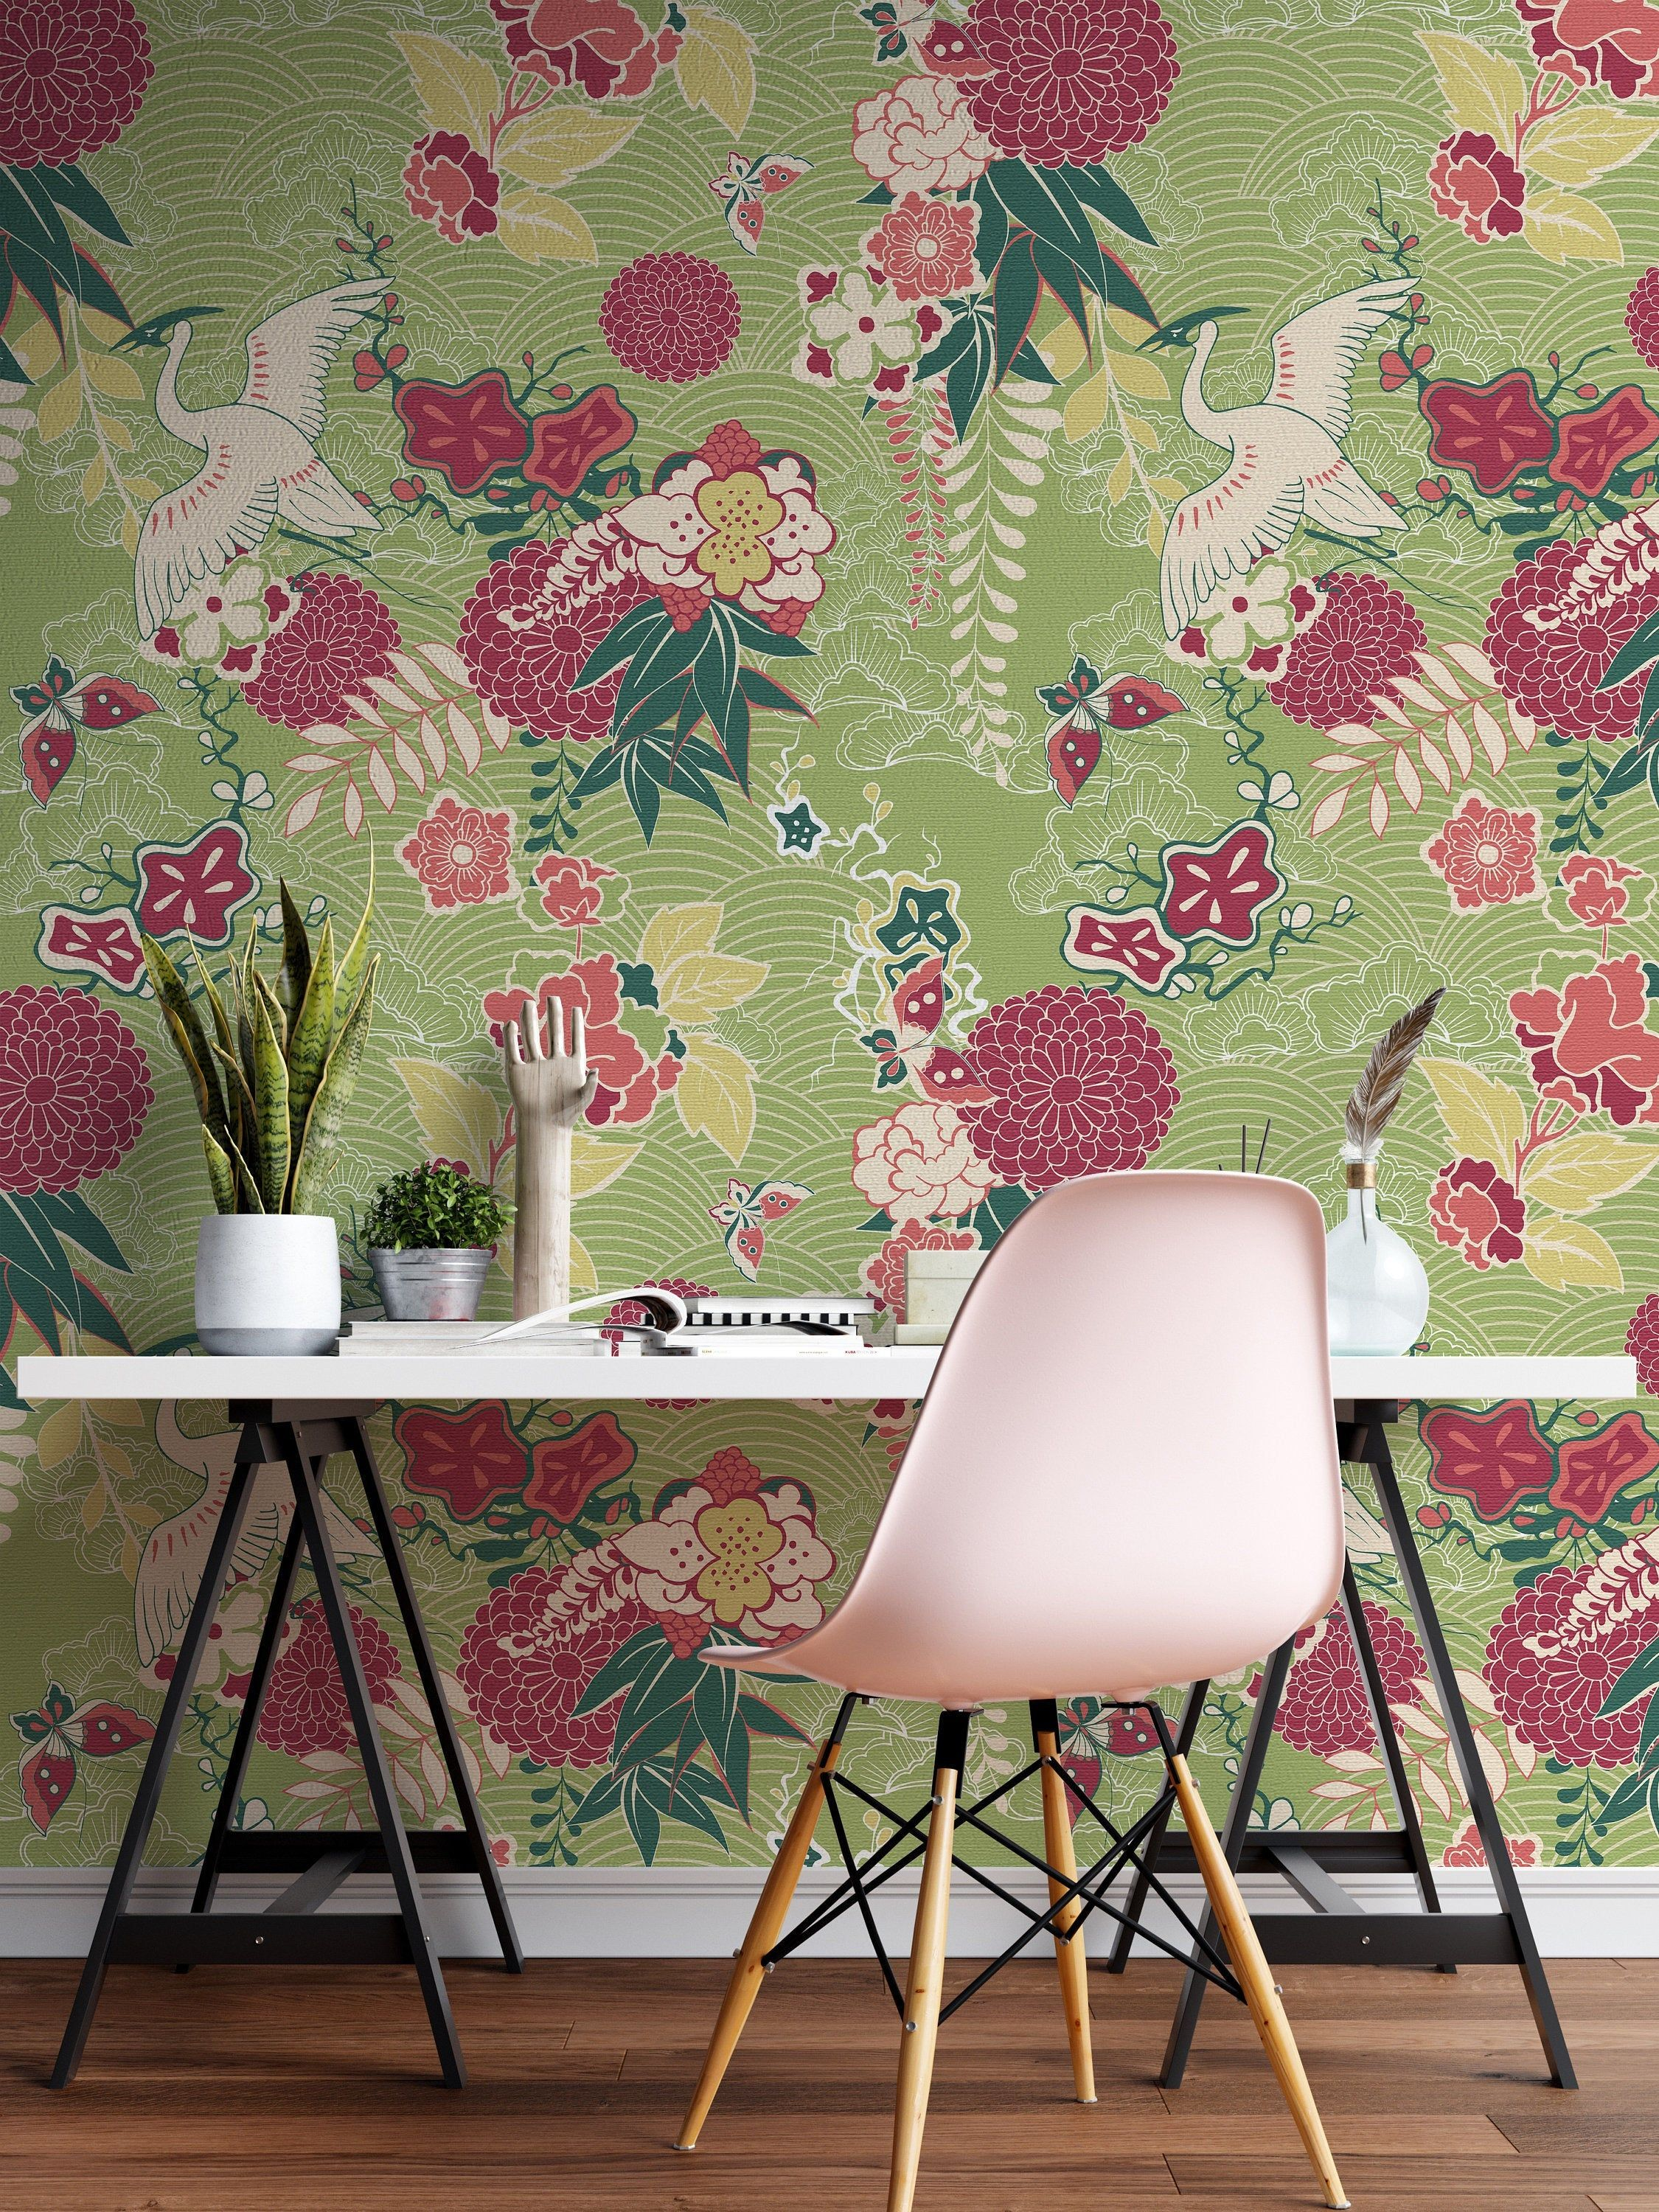 Removable Wallpaper Japanese Floral Temporary Wallpaper Etsy Removable Wallpaper Temporary Wallpaper Peel And Stick Wallpaper